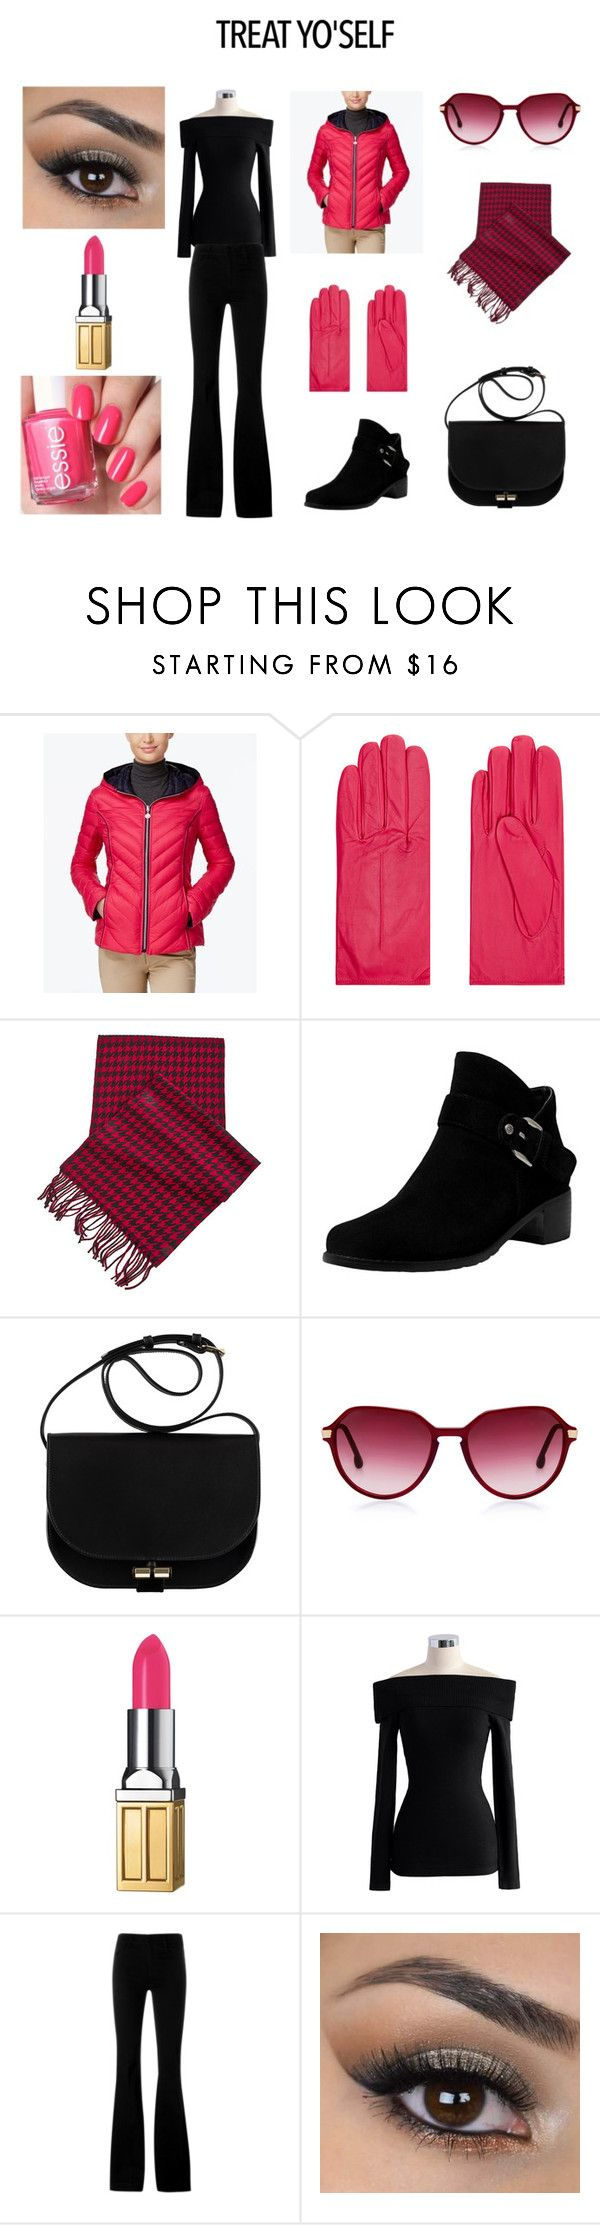 """Perfect Puffer Jackets"" by kitty-claws ❤ liked on Polyvore featuring Nautica, Furla, Elizabeth Arden, Chicwish and STELLA McCARTNEY"